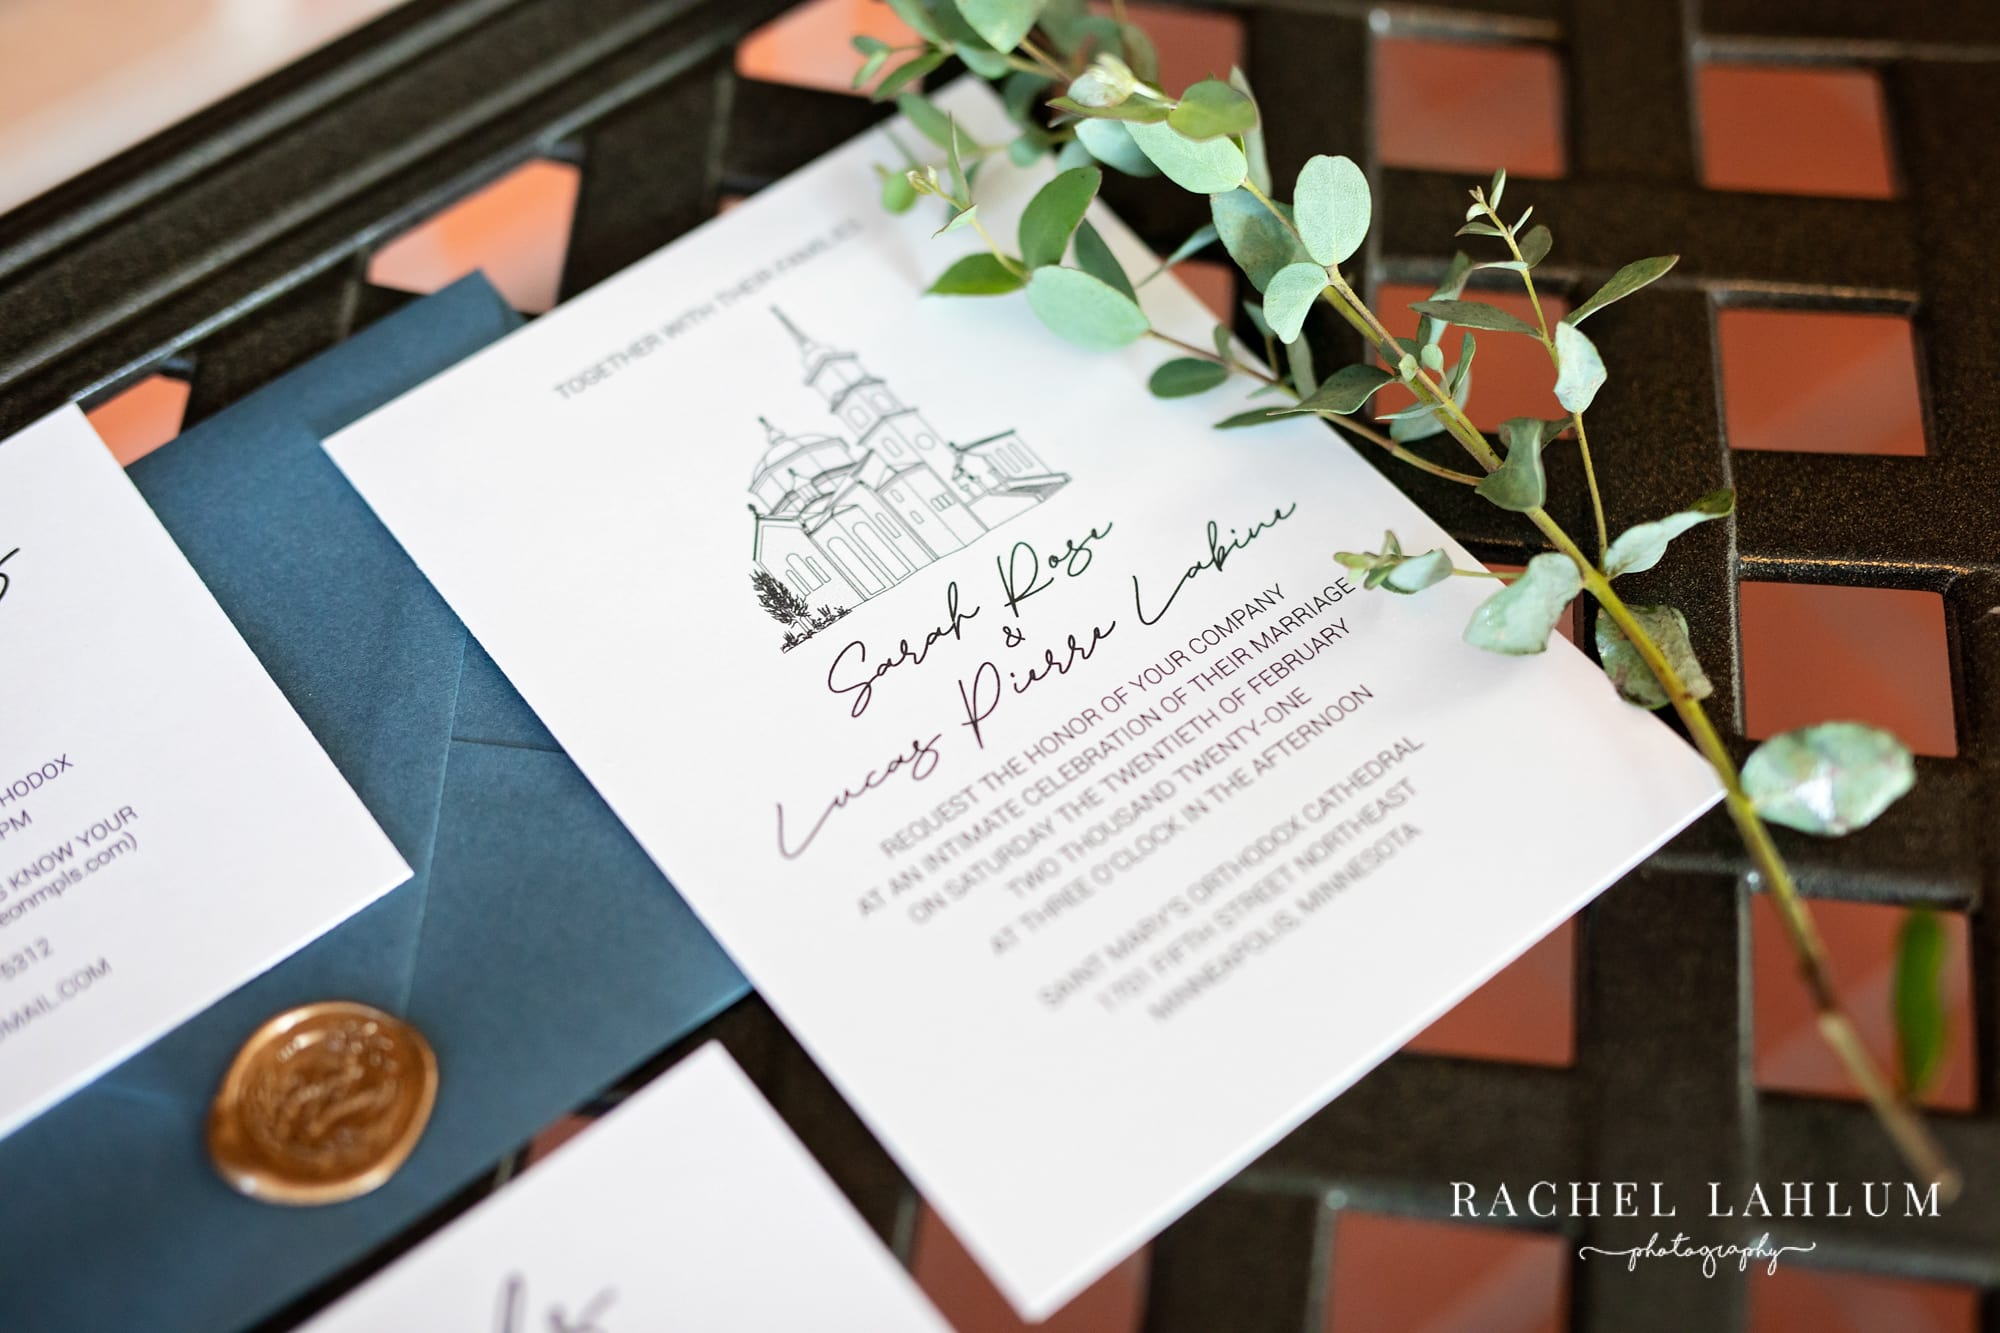 Invitation for Lucas and Sarah's wedding in Northeast Minneapolis.